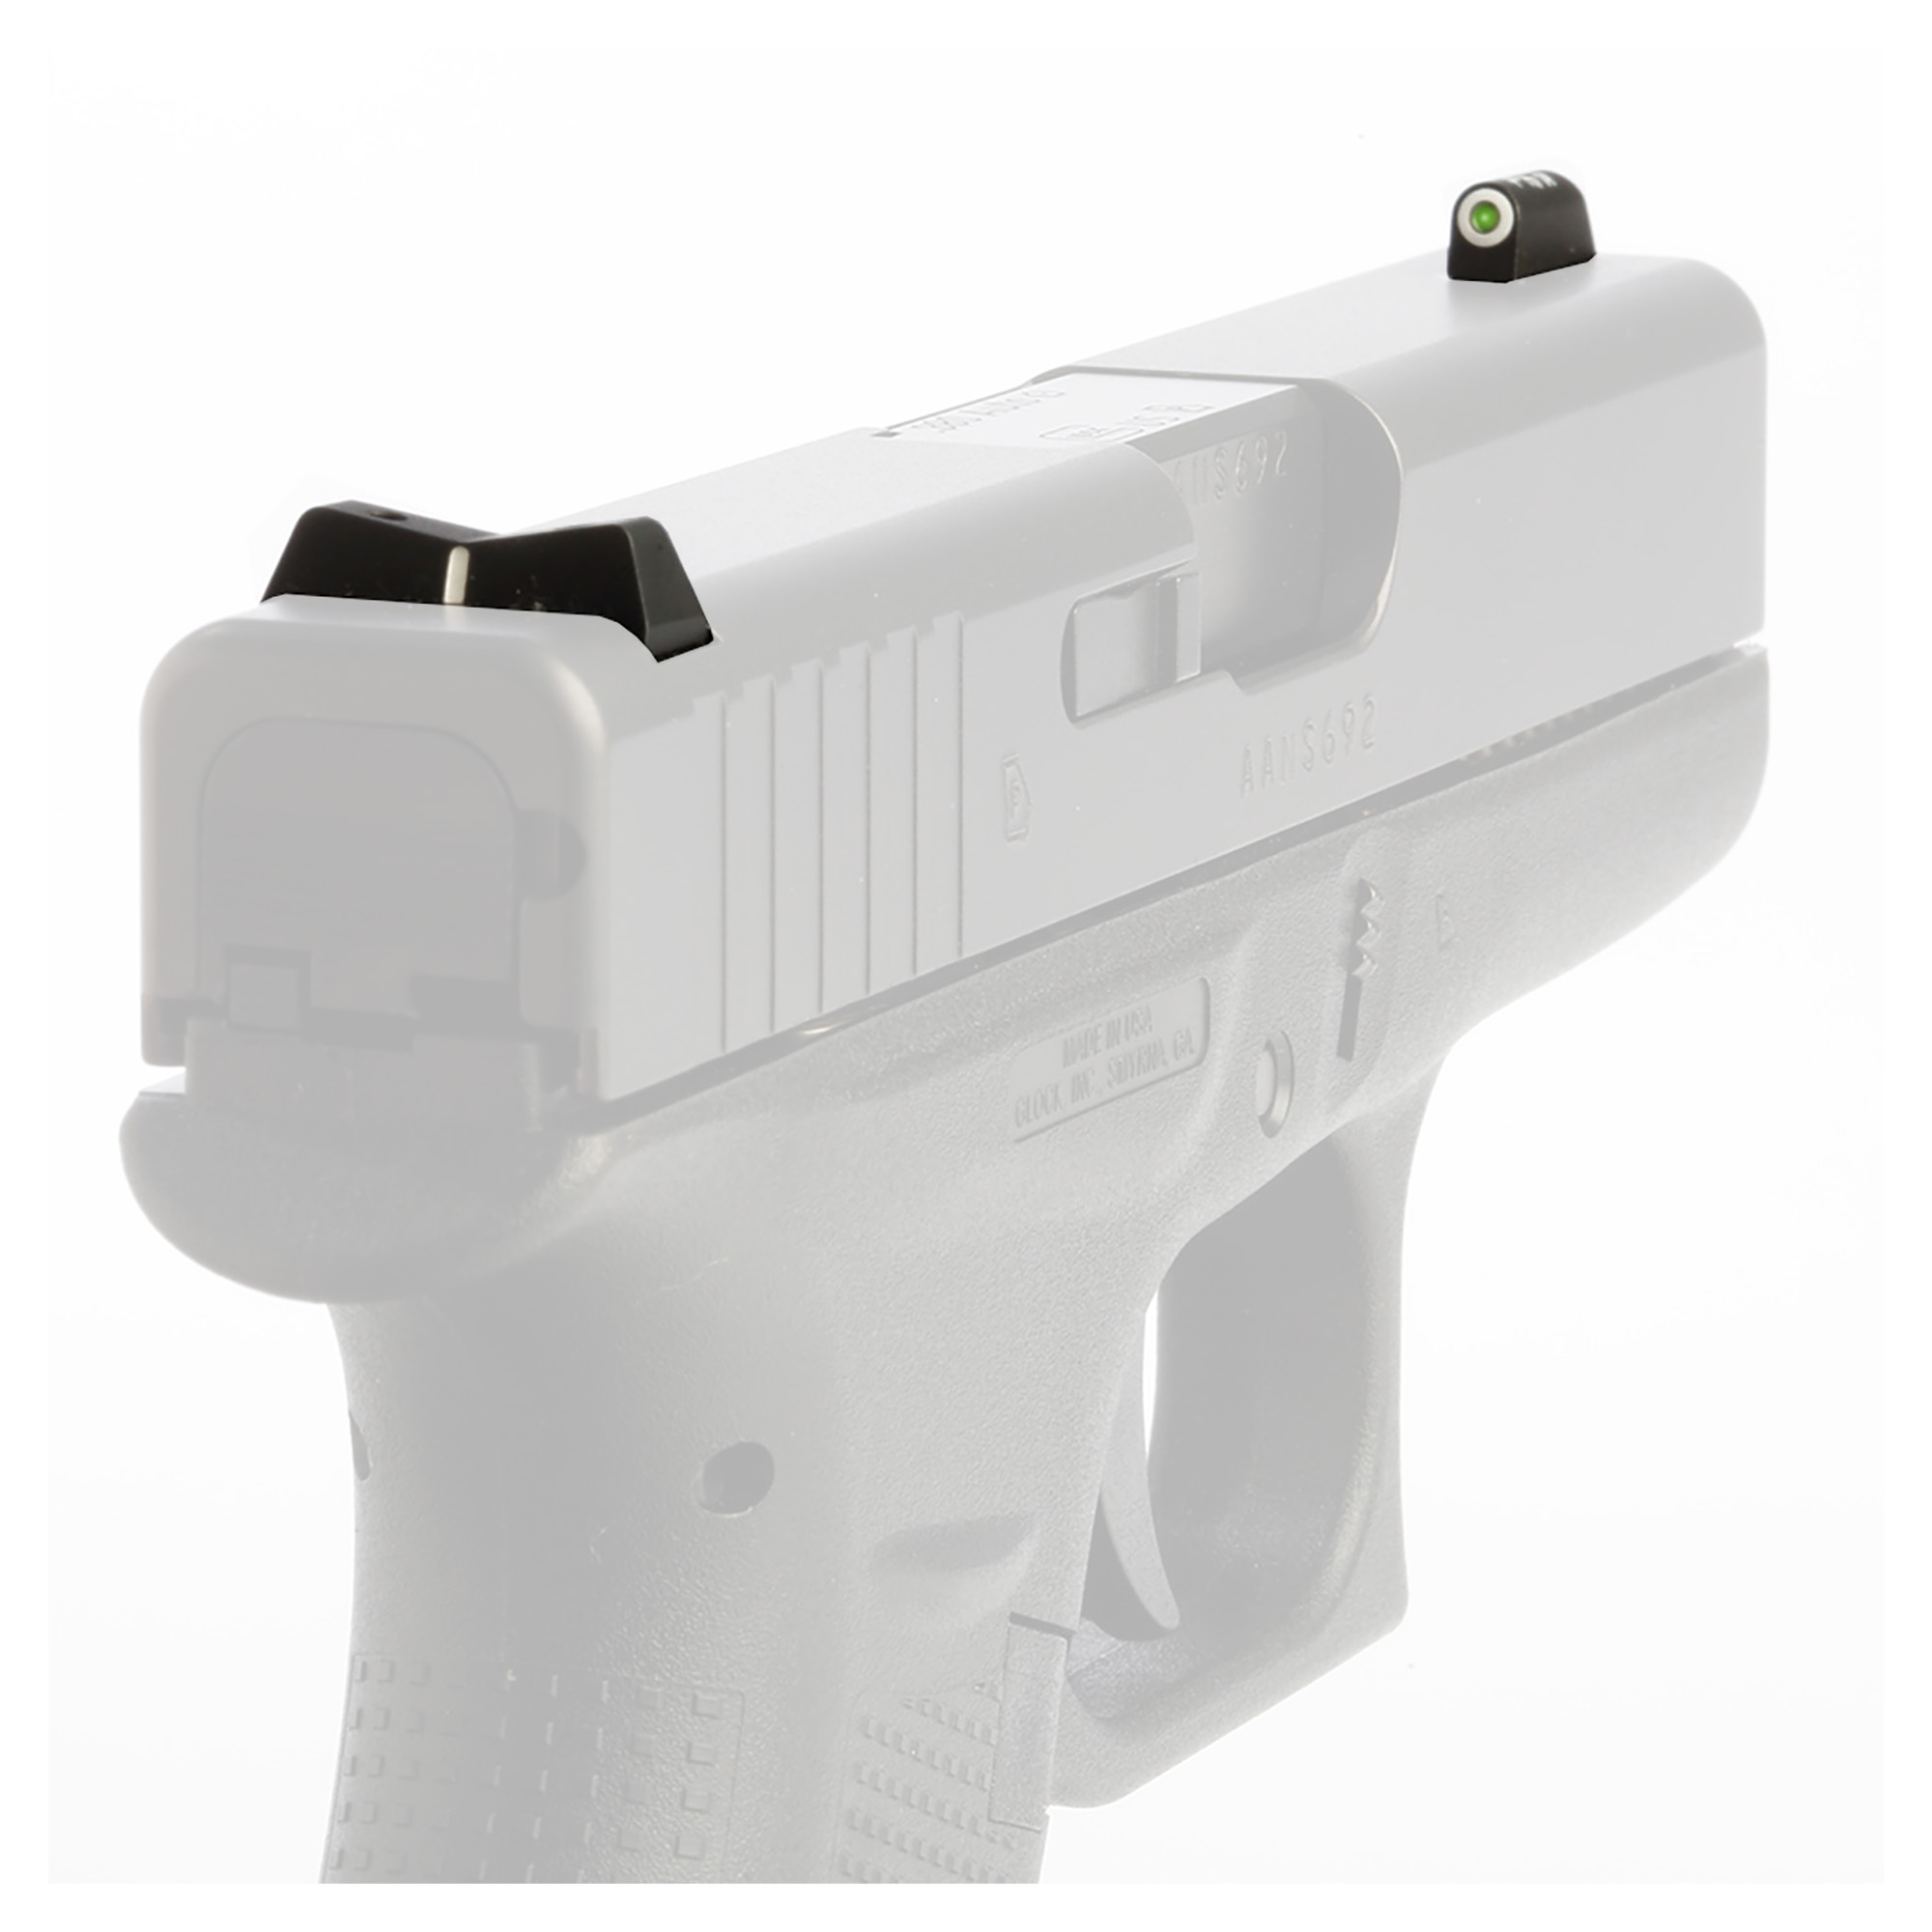 "The XS DXW Big Dot night sight is a superior defensive sight set. Fits Glock models 42 & 43. Precision machined in Fort Worth"" TX"" XS Sights feature a Big Dot Tritium front sight and express rear sight with a white stripe for fast sight acquisition in all light conditions. Big Dot demands your attention - even in high stress and for those with poor eyesight"" aids in rapidly achieving combat effective hits. White dot reflects ambient light for best visibility in low light. Shallow V-Notch rear provides an unobstructed view of the front sight"" along with a greater field of view down range"" especially when moving and shooting. Day-Light"" Half-Light"" or Low-Light"" just ""dot the i"" and center the dot over your target within 15 yards. Outside Diameter Big Dot 0.188""; fits in common holsters. Installation might require filing to fit sight to dovetail"" do not use a sight press/pusher tool."